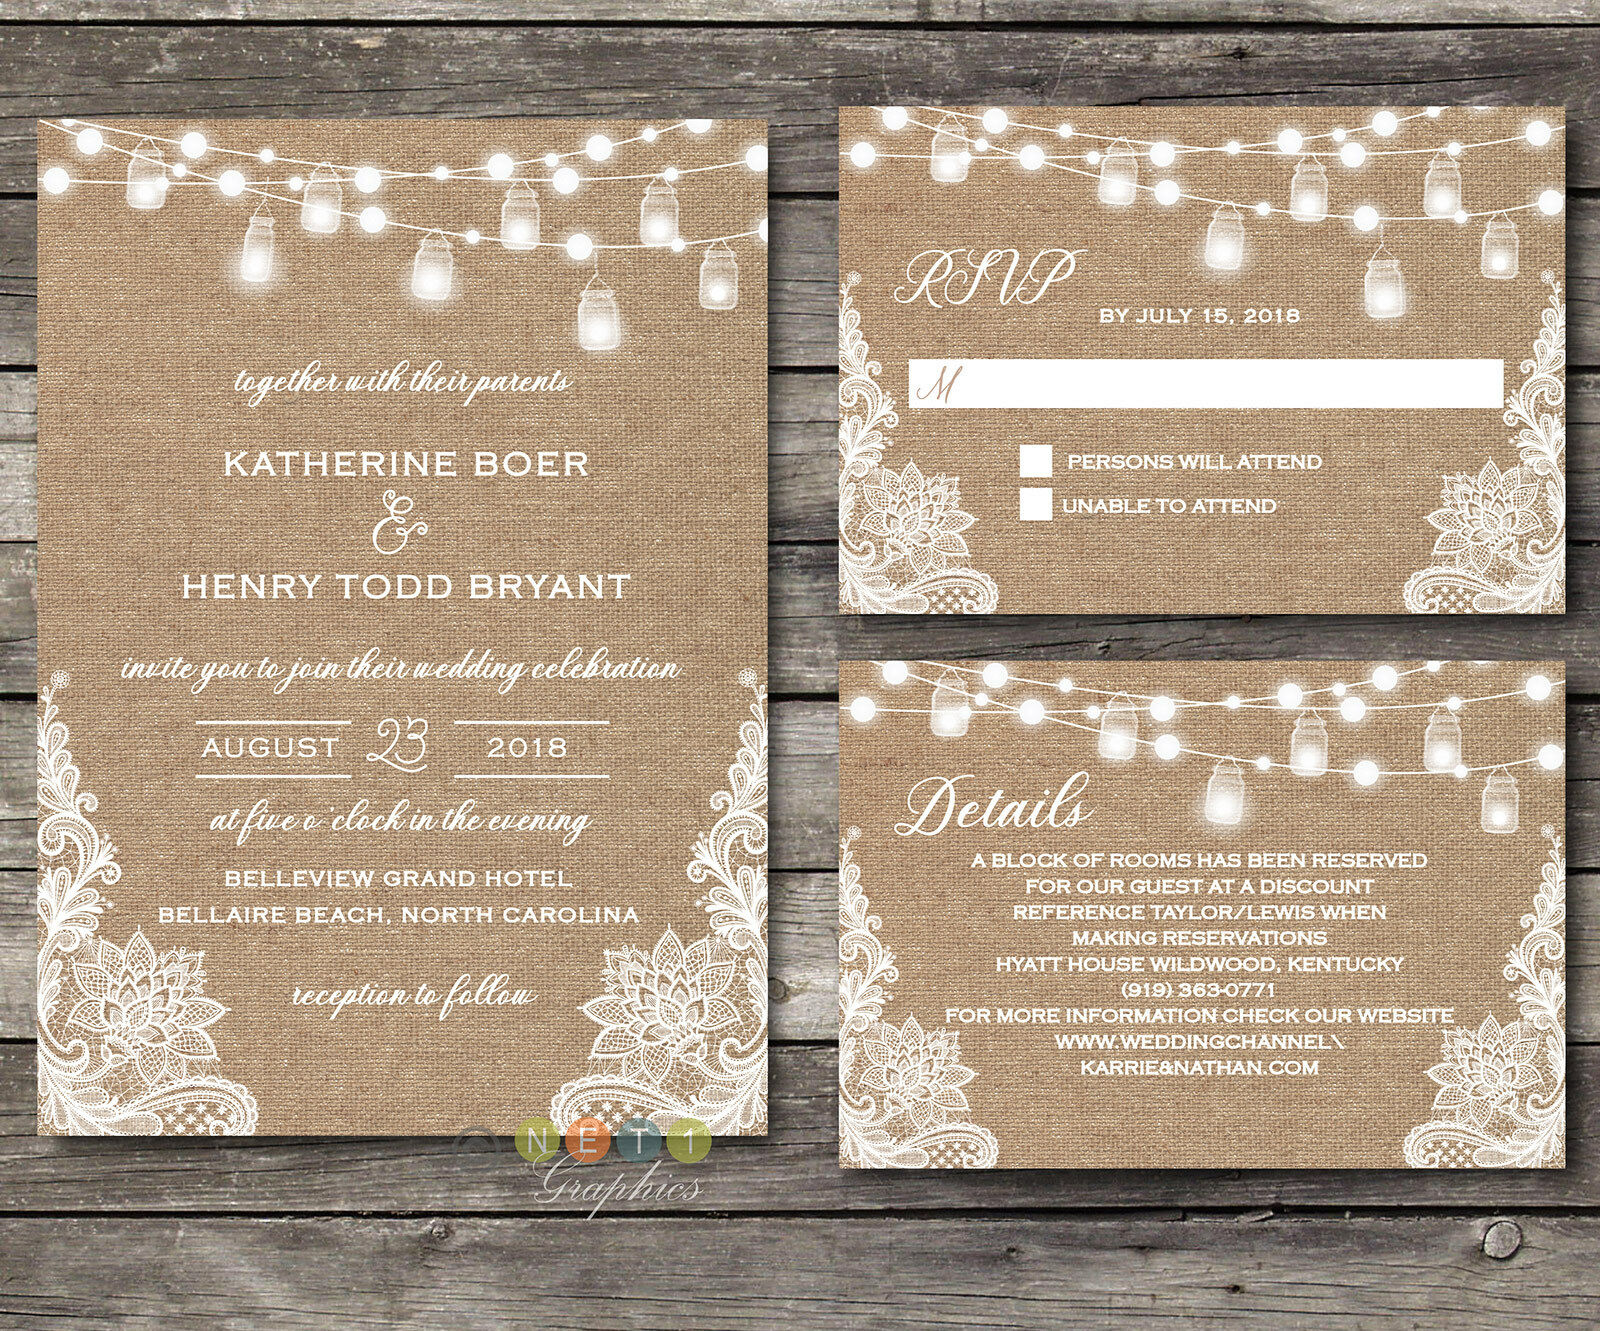 Personalized Rustic Burlap Lace String Lights Lace Wedding Invitations